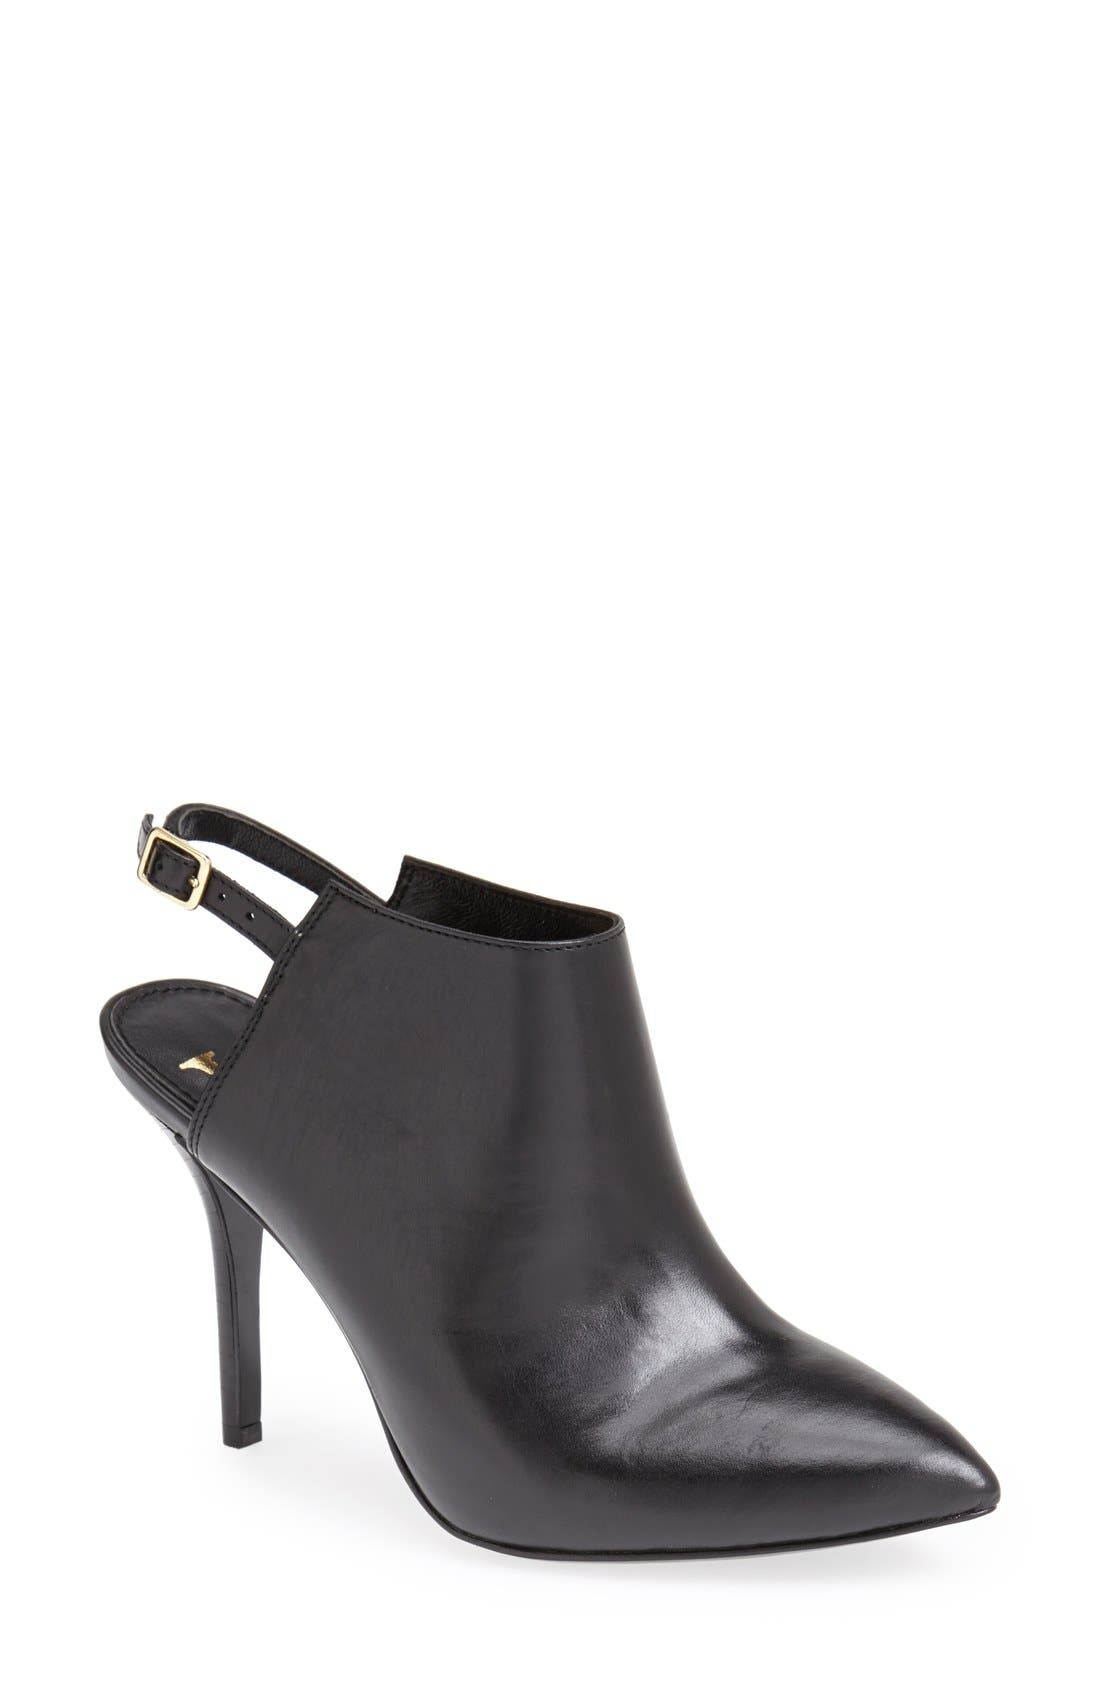 Alternate Image 1 Selected - VC Signature 'Calven' Slingback Pointy Toe Bootie (Women)